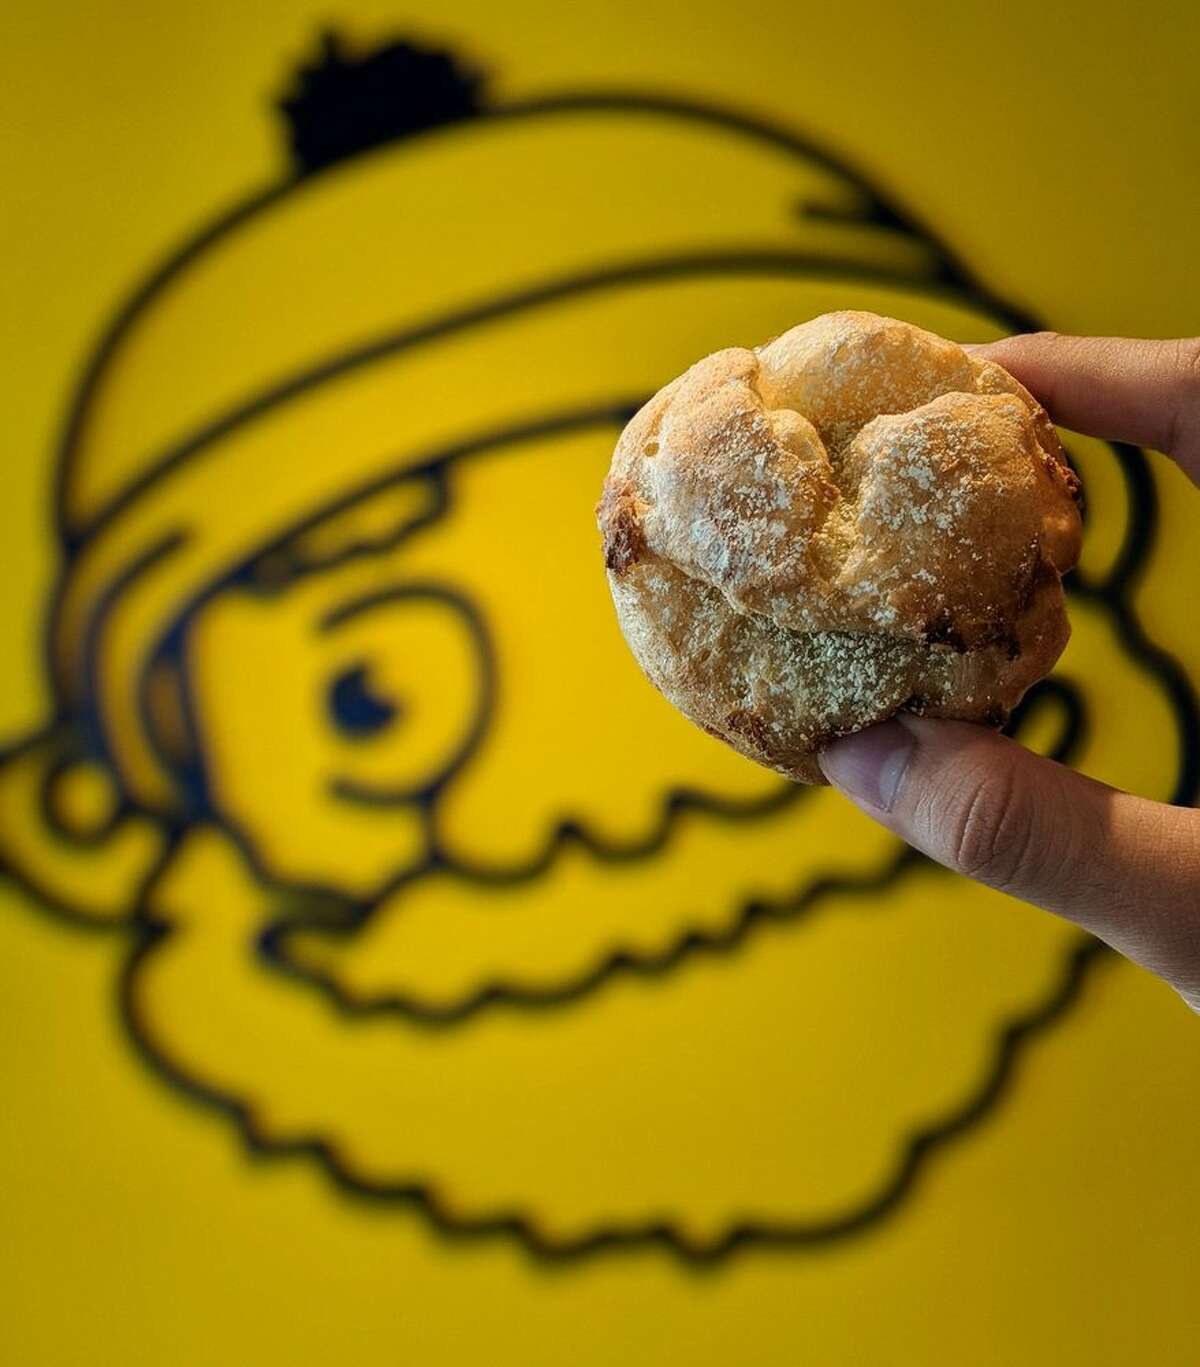 Beard Papa's will open a second Houston-area location on June 22 at 9393 Bellaire Blvd. in Bellaire. The company, founding in Japan, makes cream puffs.